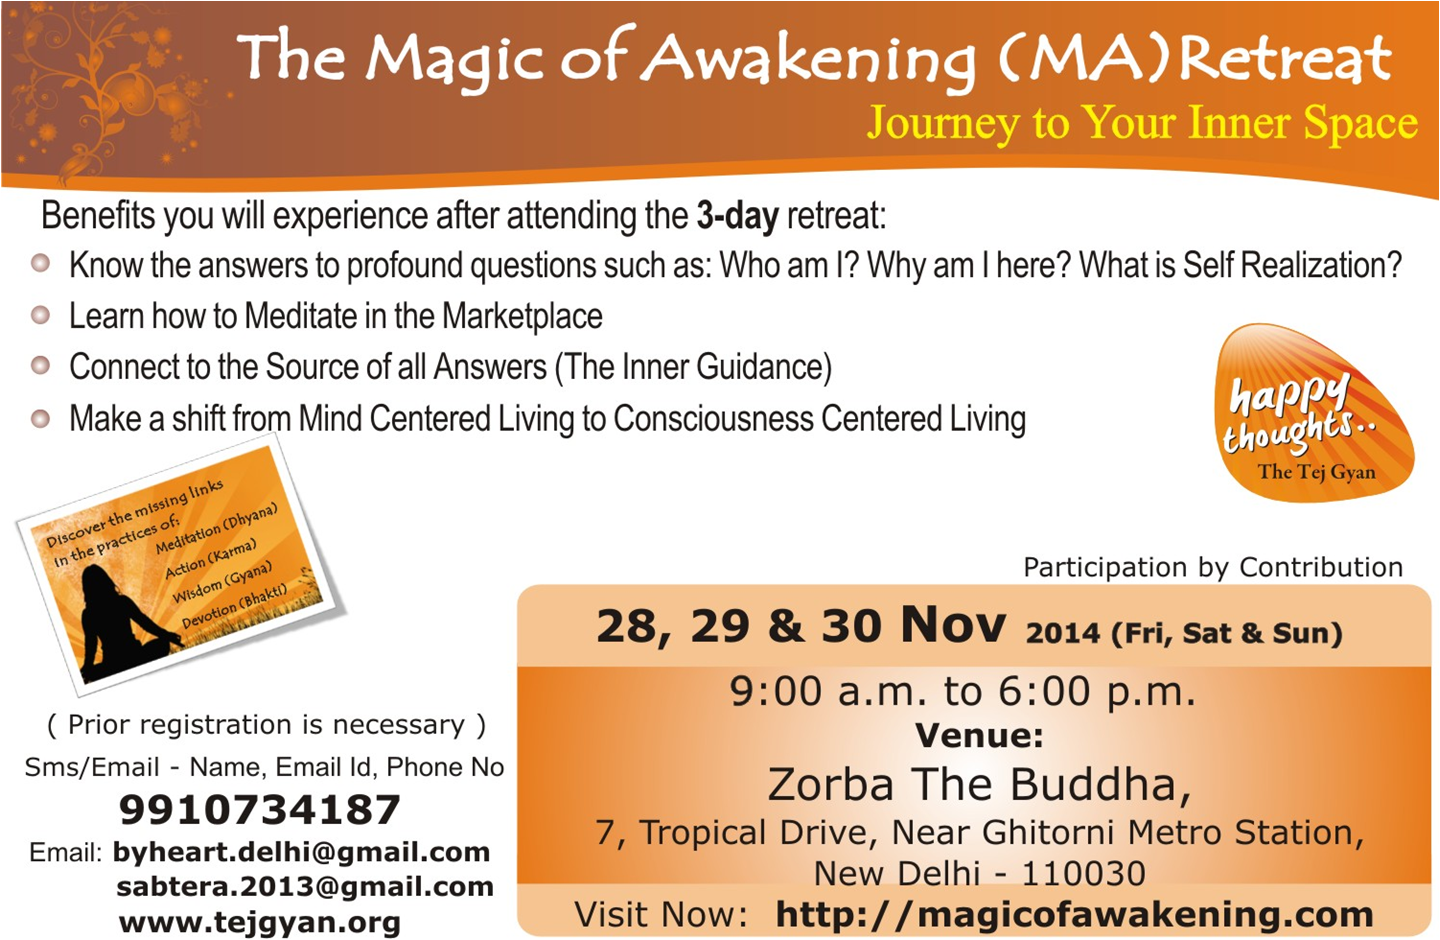 The Magic of Awakening Retreat in New Delhi